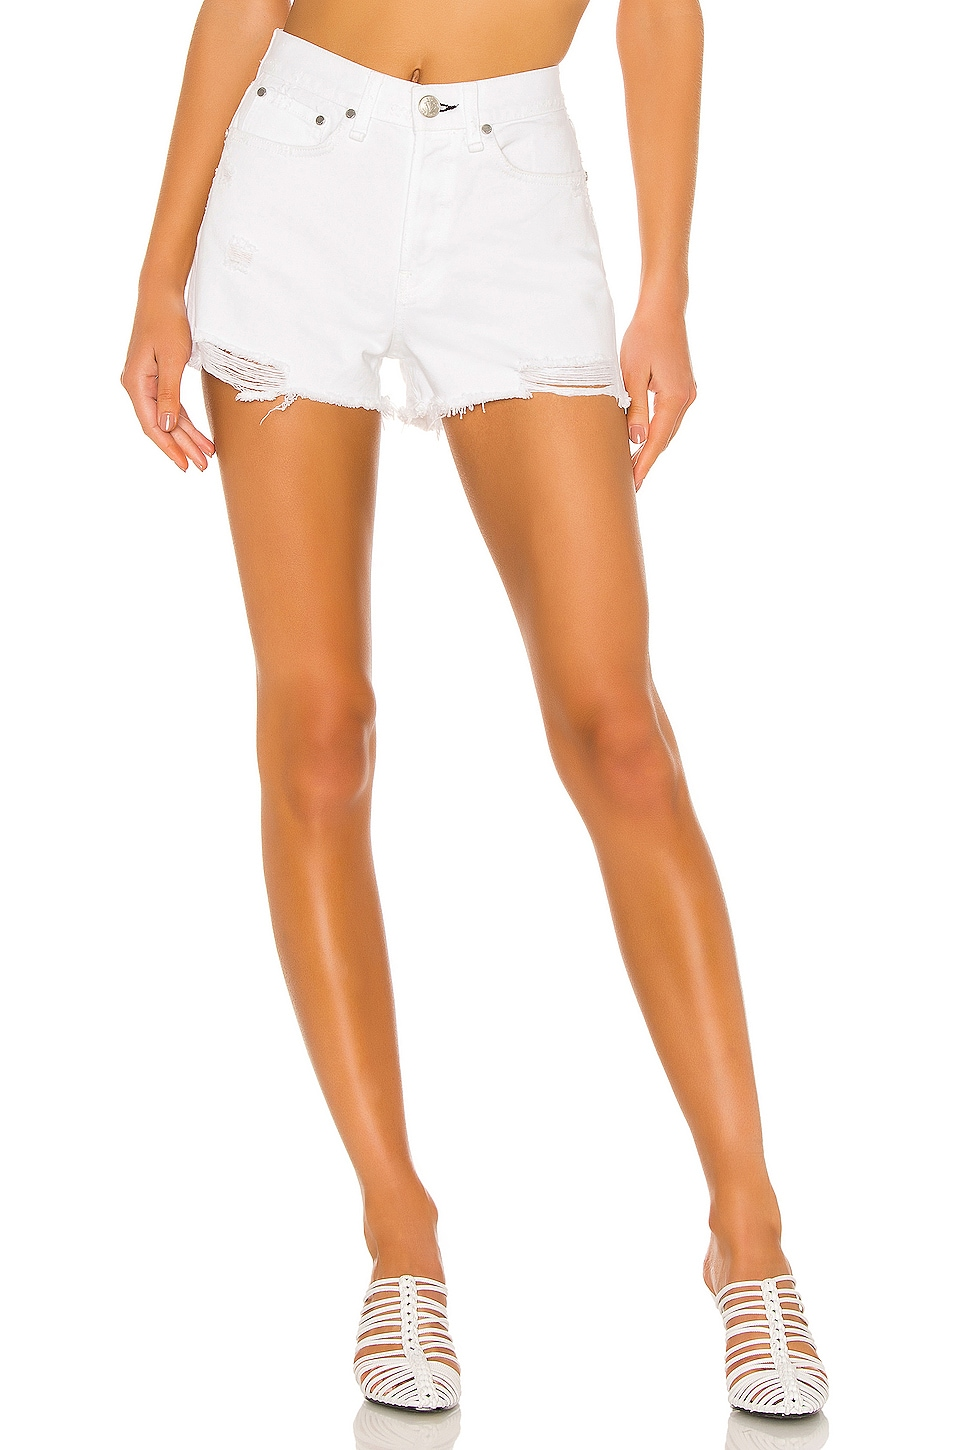 Rag & Bone Maya High Rise Short in White Tabby